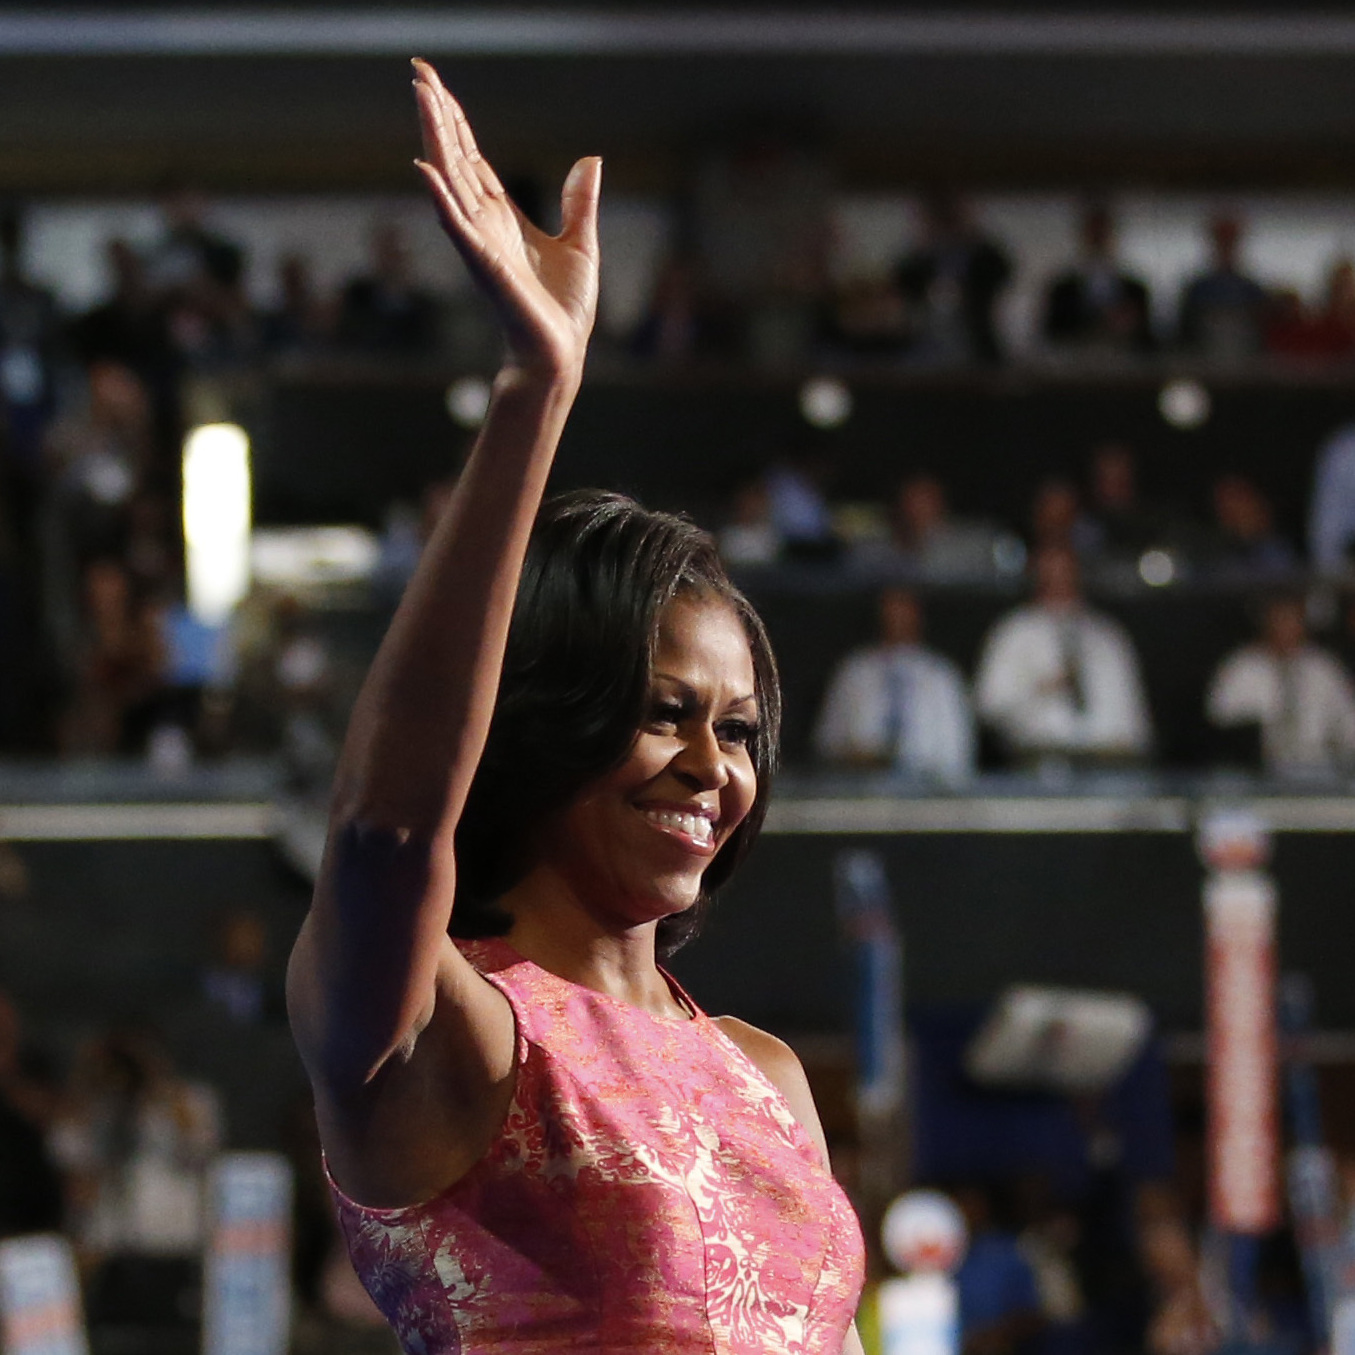 First lady Michelle Obama waves after addressing the Democratic National Convention in Charlotte, N.C., on Sept. 4.